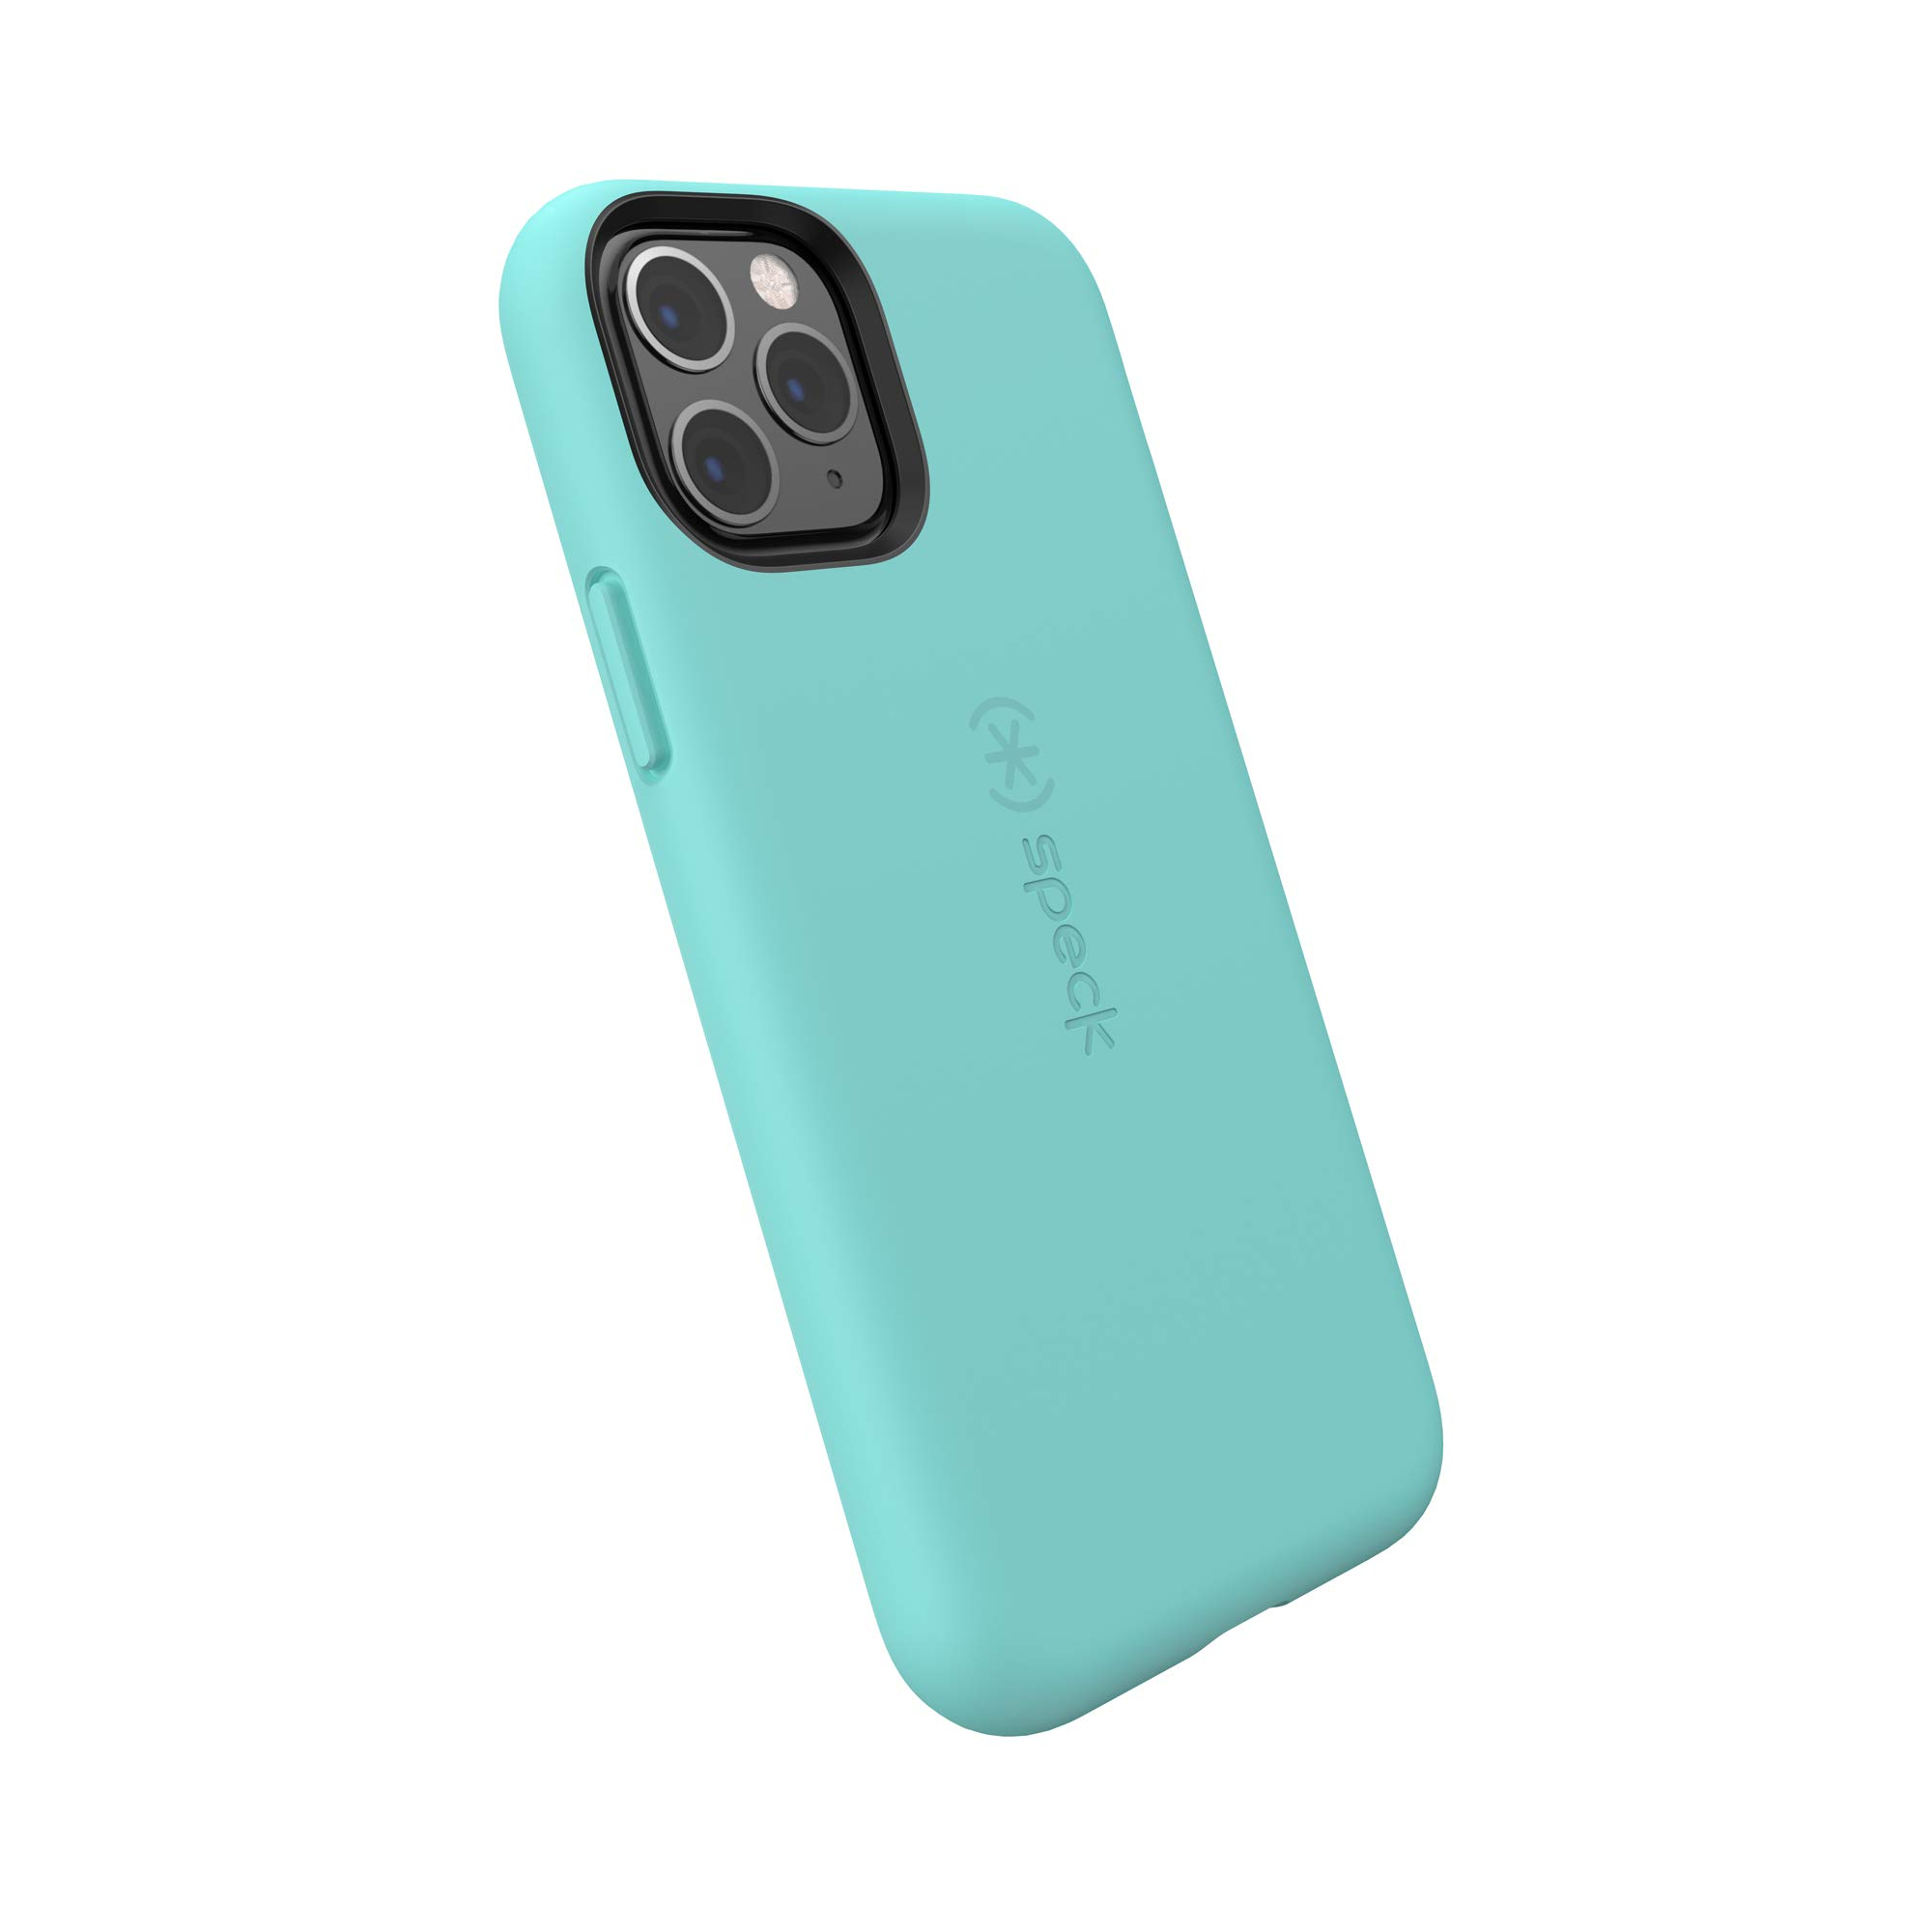 Speck CandyShell Fit iPhone 11 Pro Case, Zeal Teal/Zeal Teal